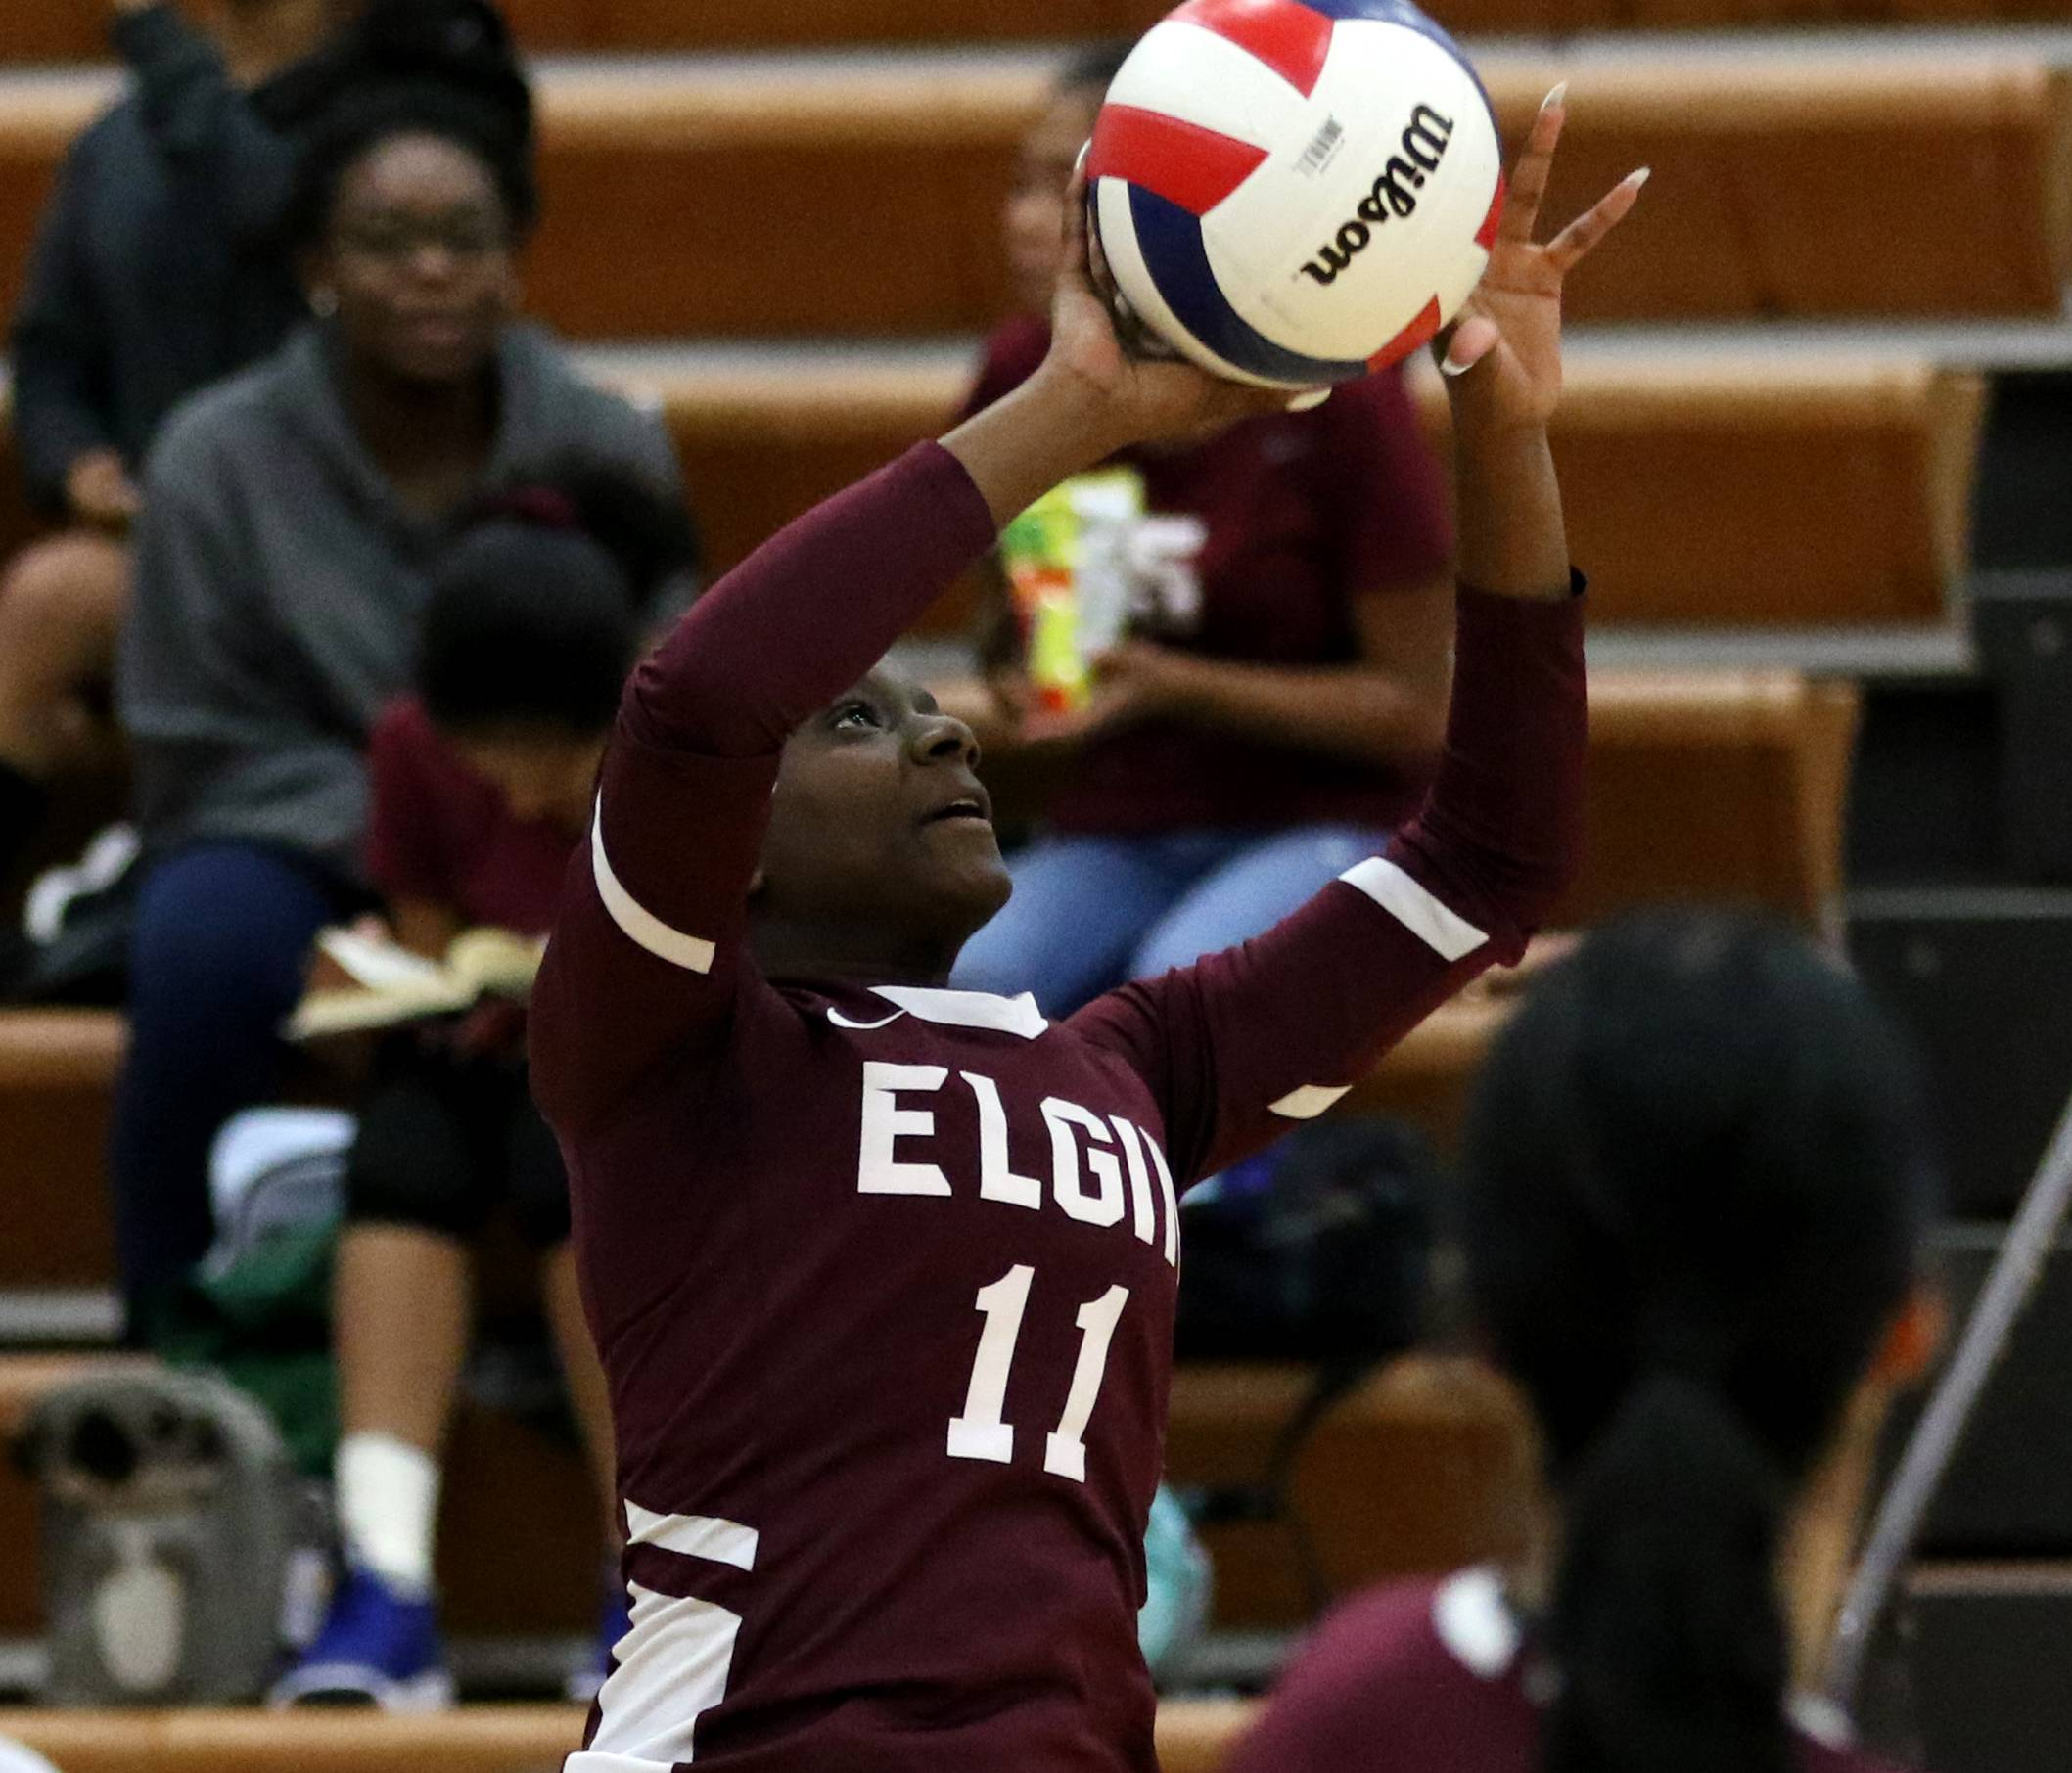 Elgin's TeKena Lindsay sets the ball in varsity girls volleyball at Larkin on Wednesday.